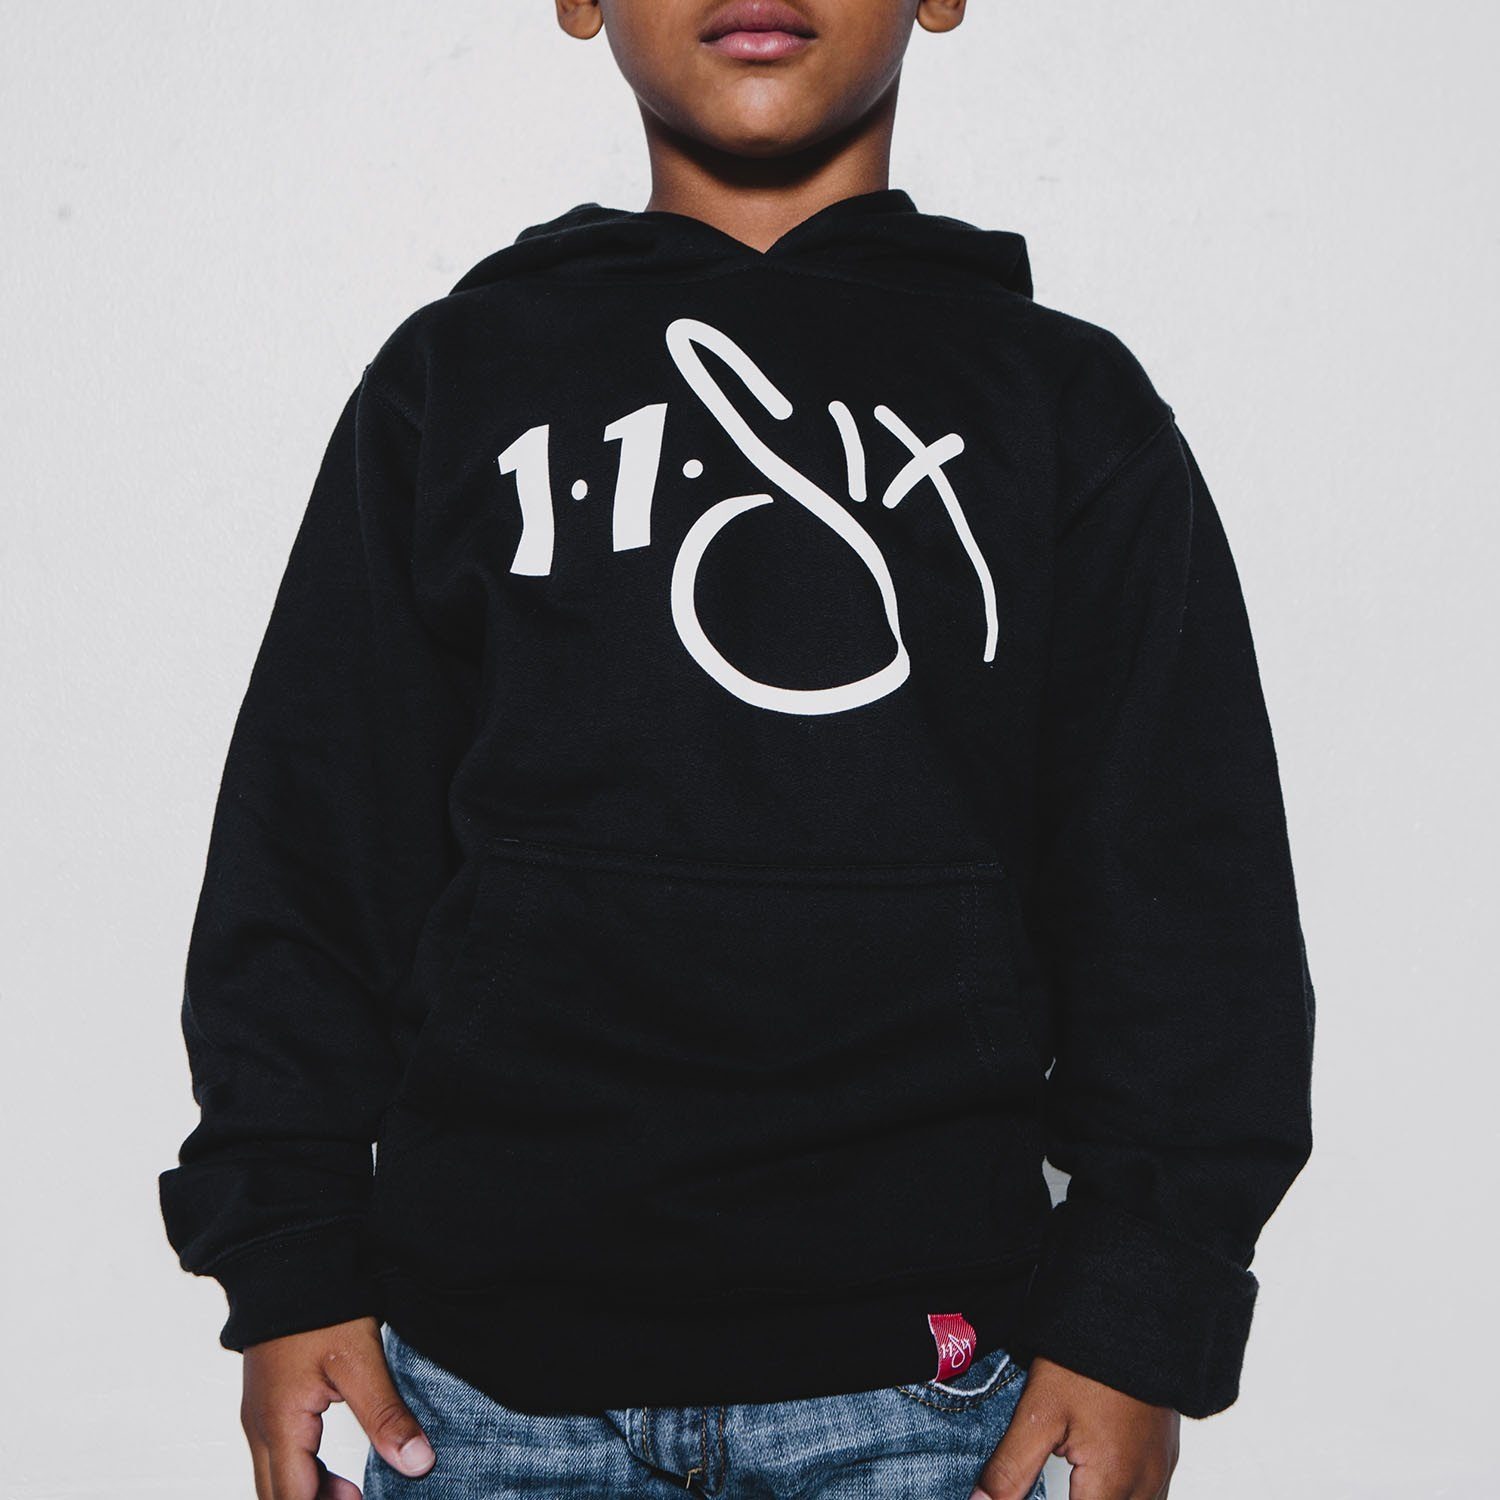 116 Youth 'Red Label' Pullover Hoodie